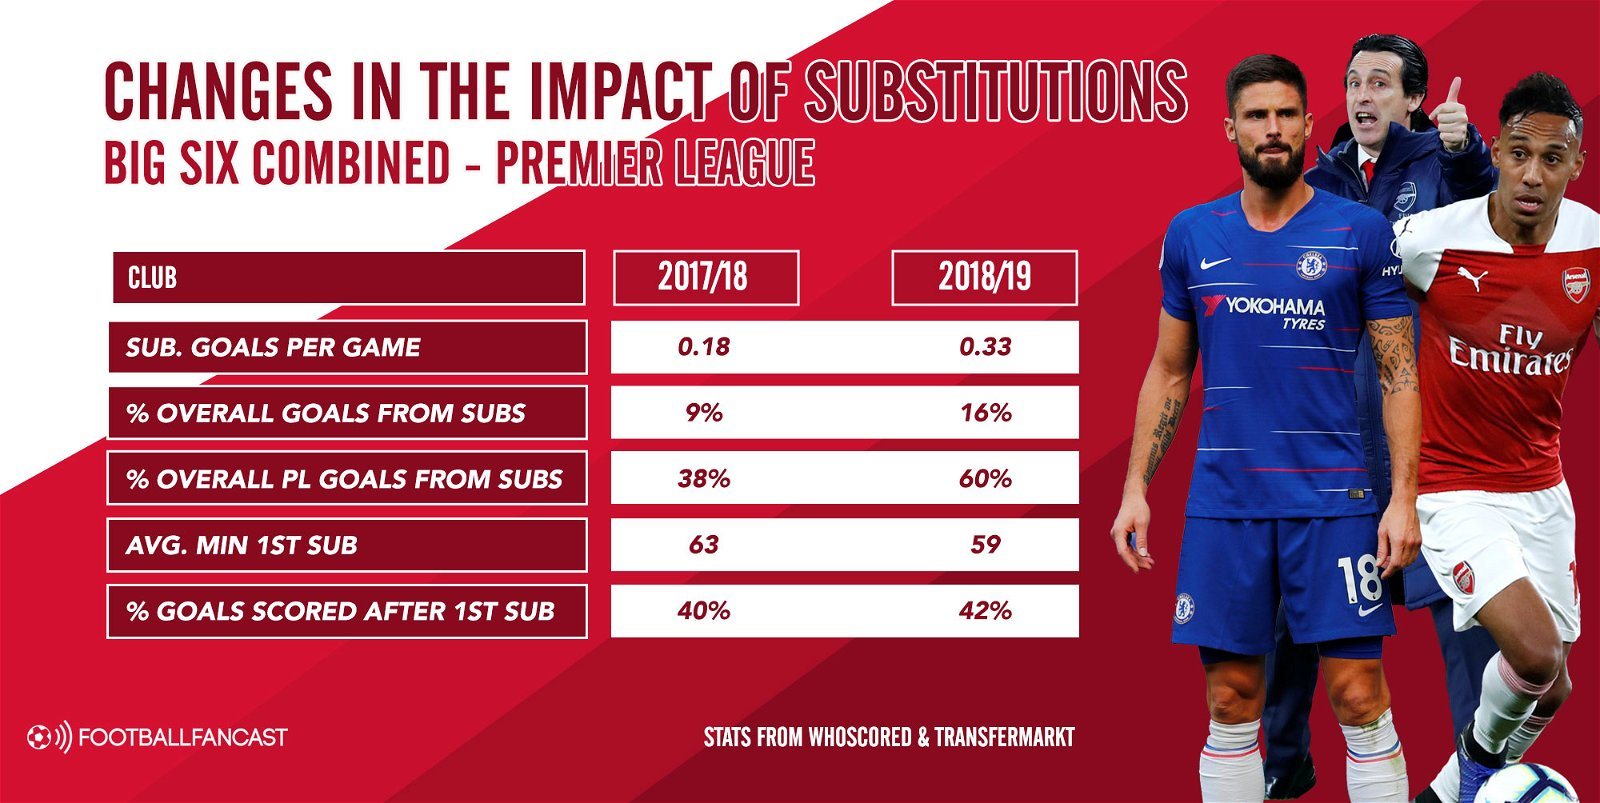 Changes in impact of subs - Big Six